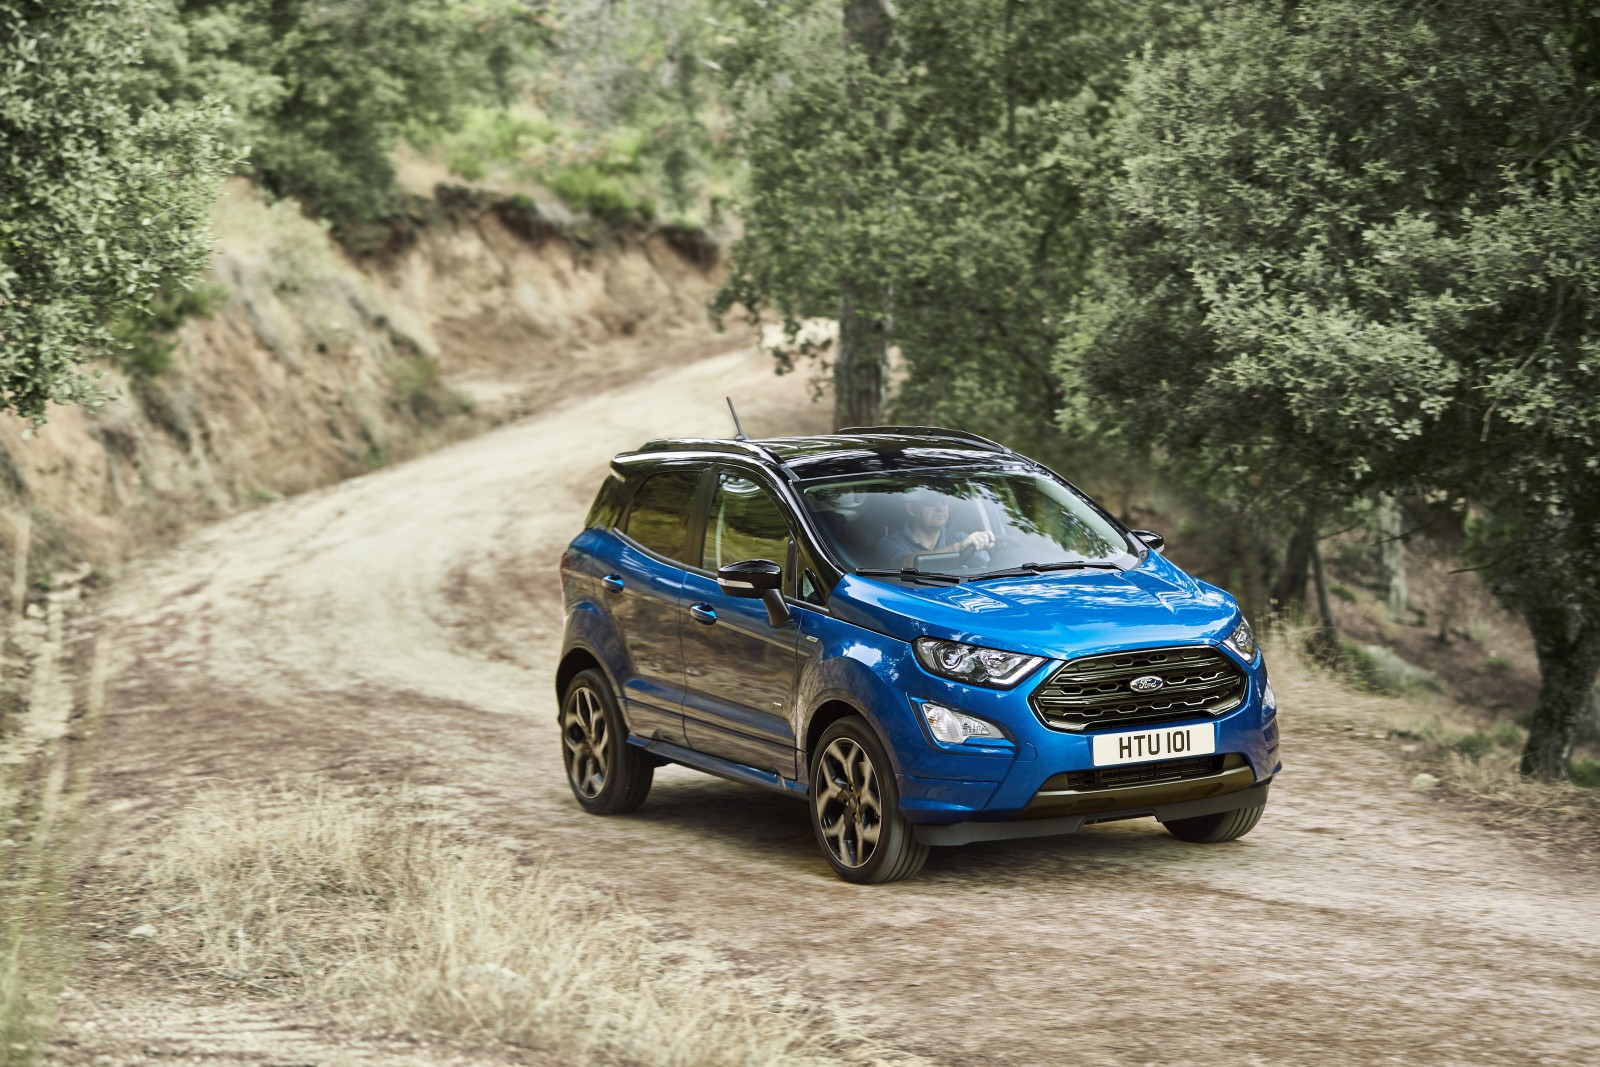 Refreshed Ford EcoSport revealed ahead of Frankfurt Motor Show